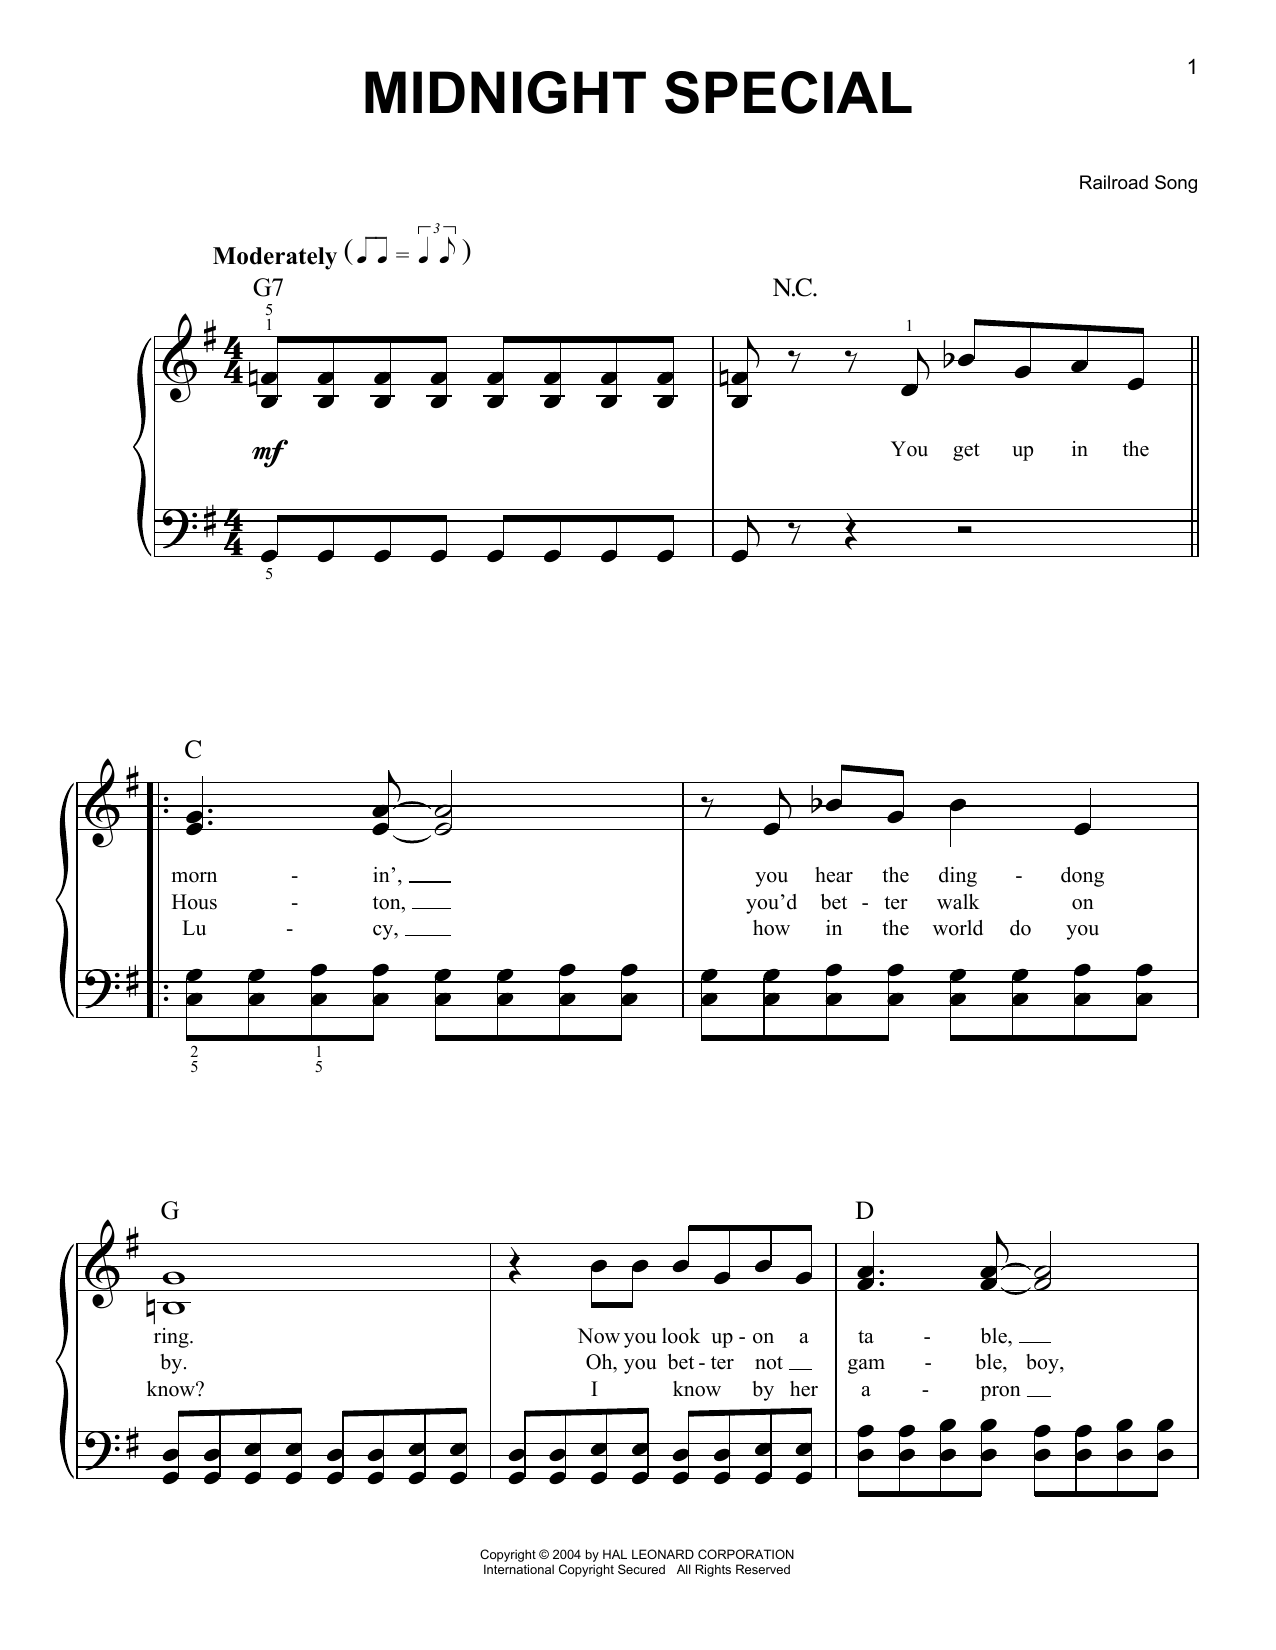 Railroad Song Midnight Special sheet music notes and chords. Download Printable PDF.